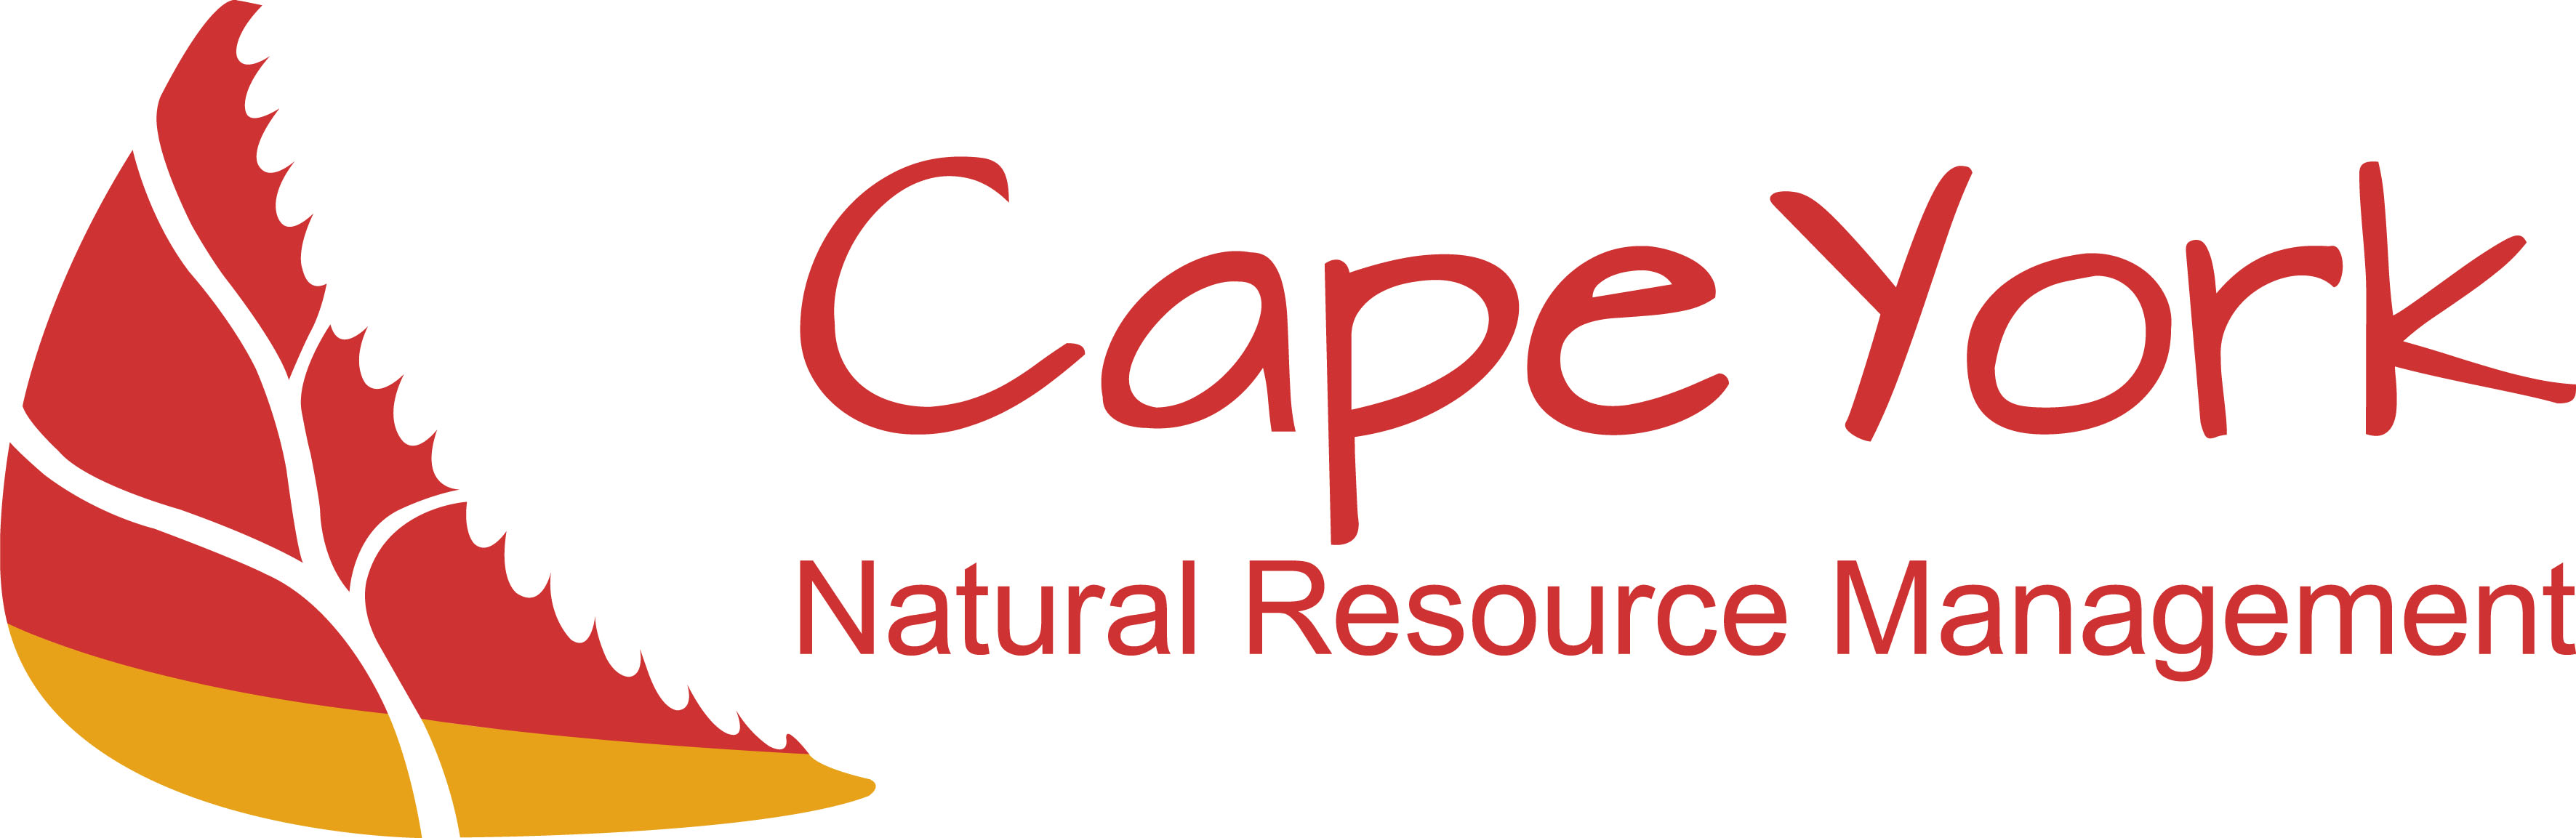 Cape York Natural Resource Management Ltd